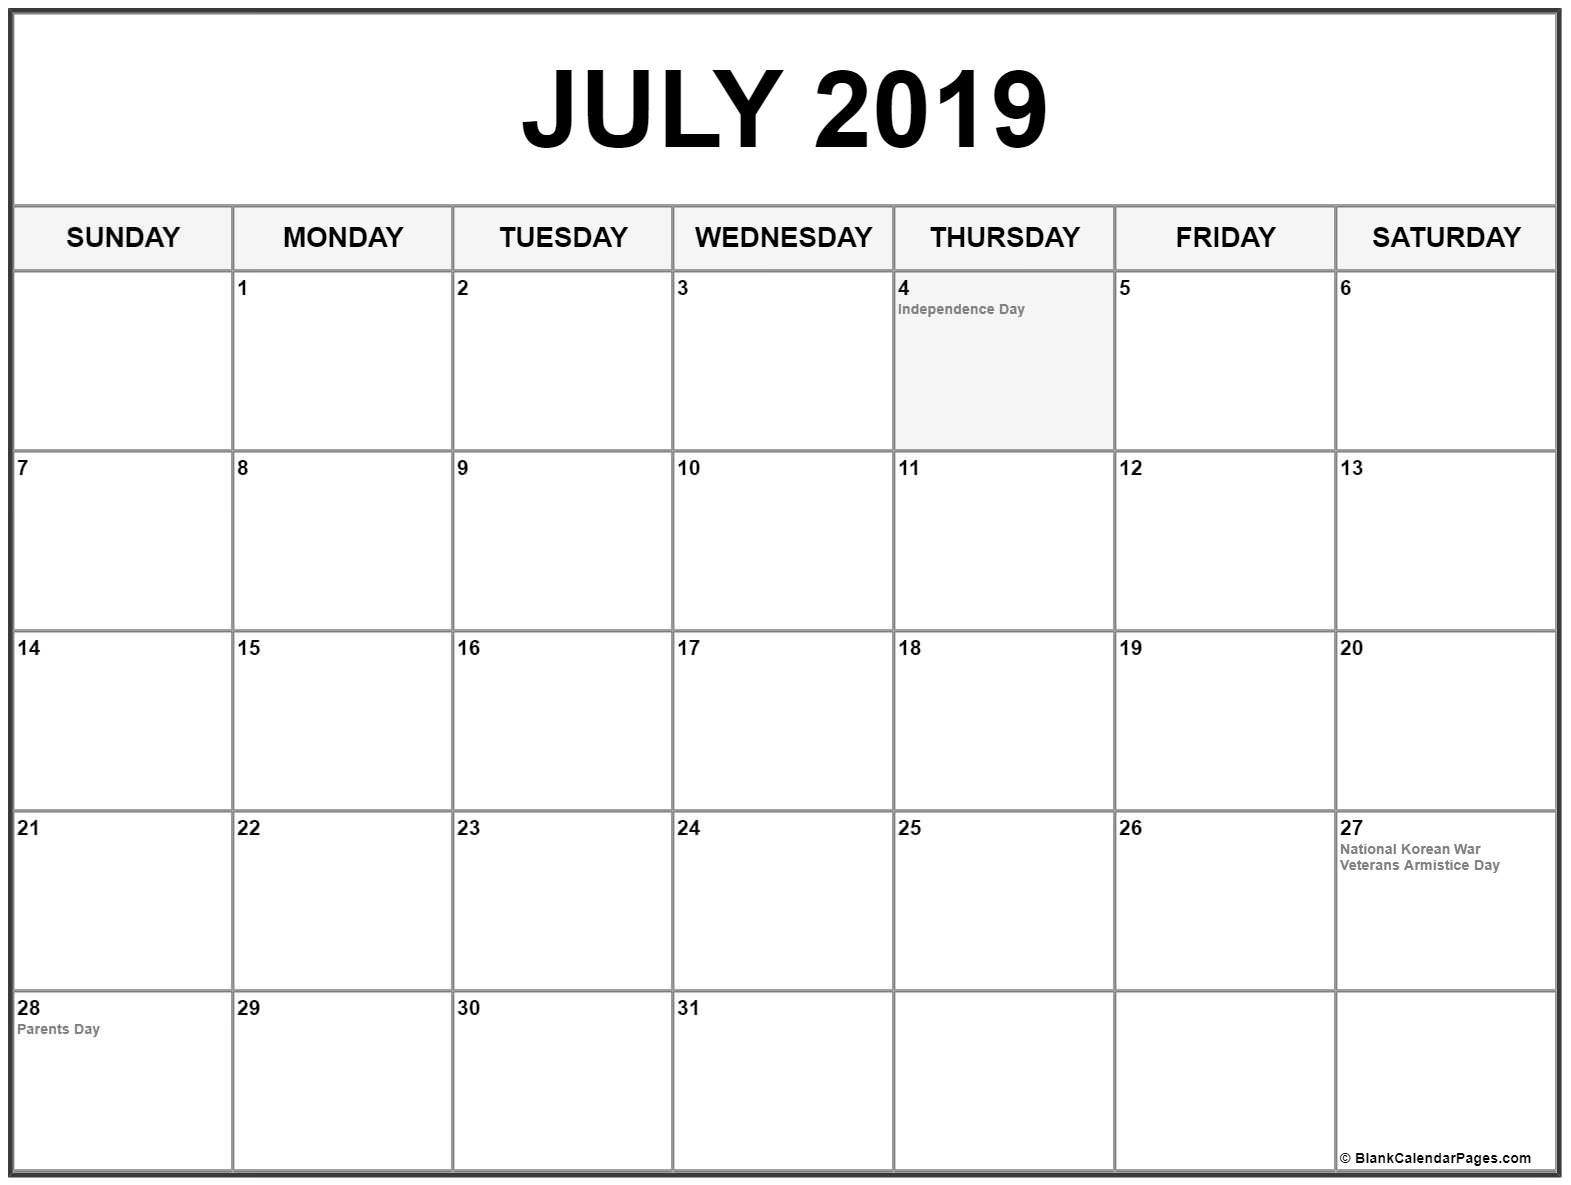 July 2019 Calendar With Holidays July July2019 Julycalendar2019 July2019calendar Printable Calendar July Calendar Word Calendar 2019 Printable